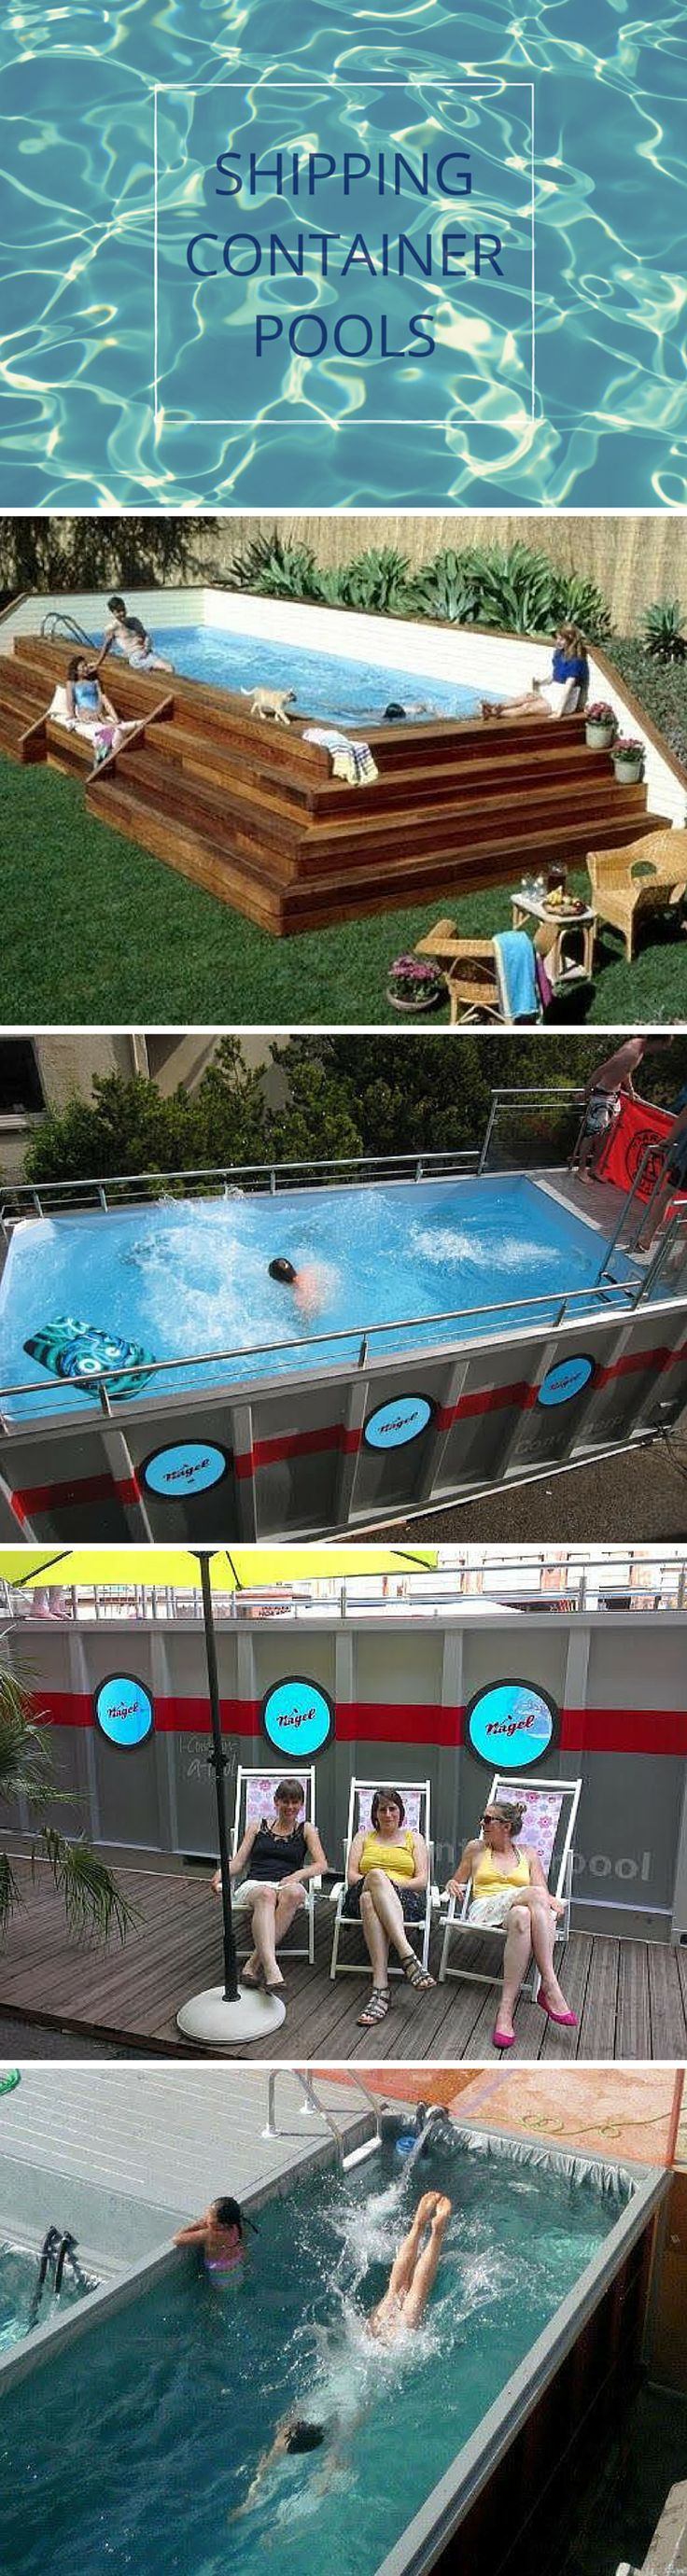 How to build your own shipping container home shipping container pool shipping containers and Build your own container home